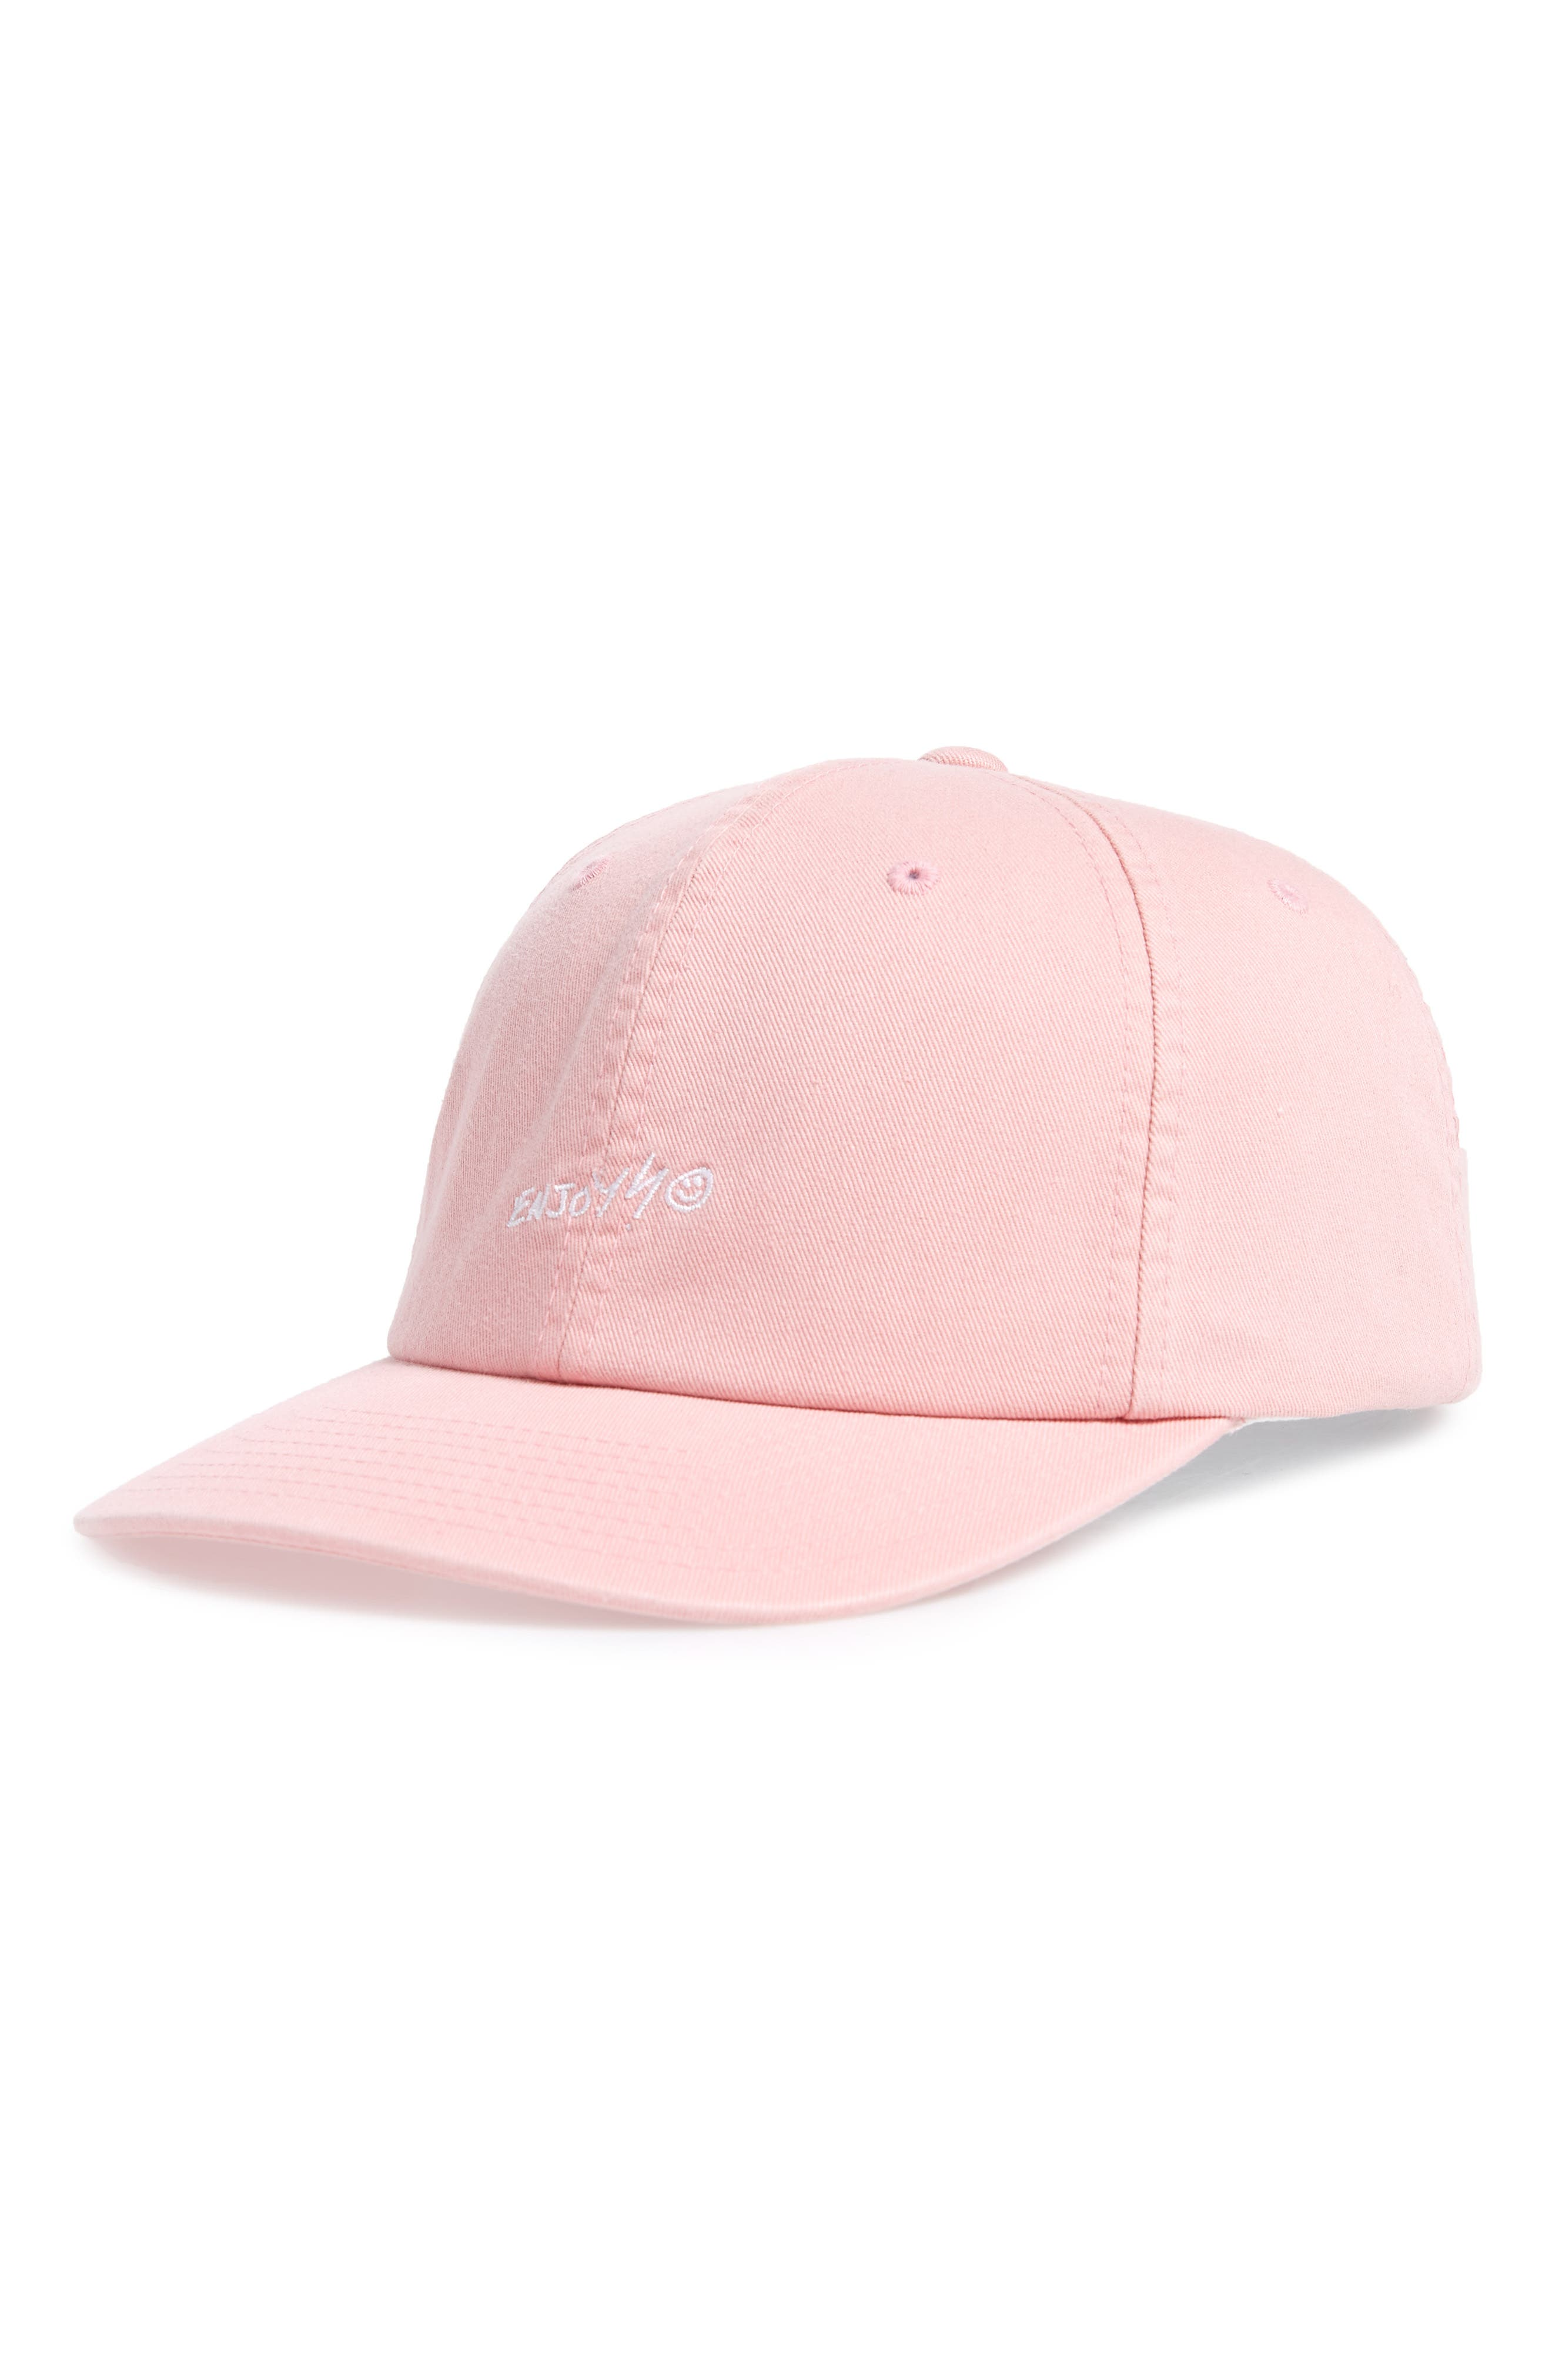 HURLEY Enjoy Embroidered Ball Cap - Pink in Storm Pink